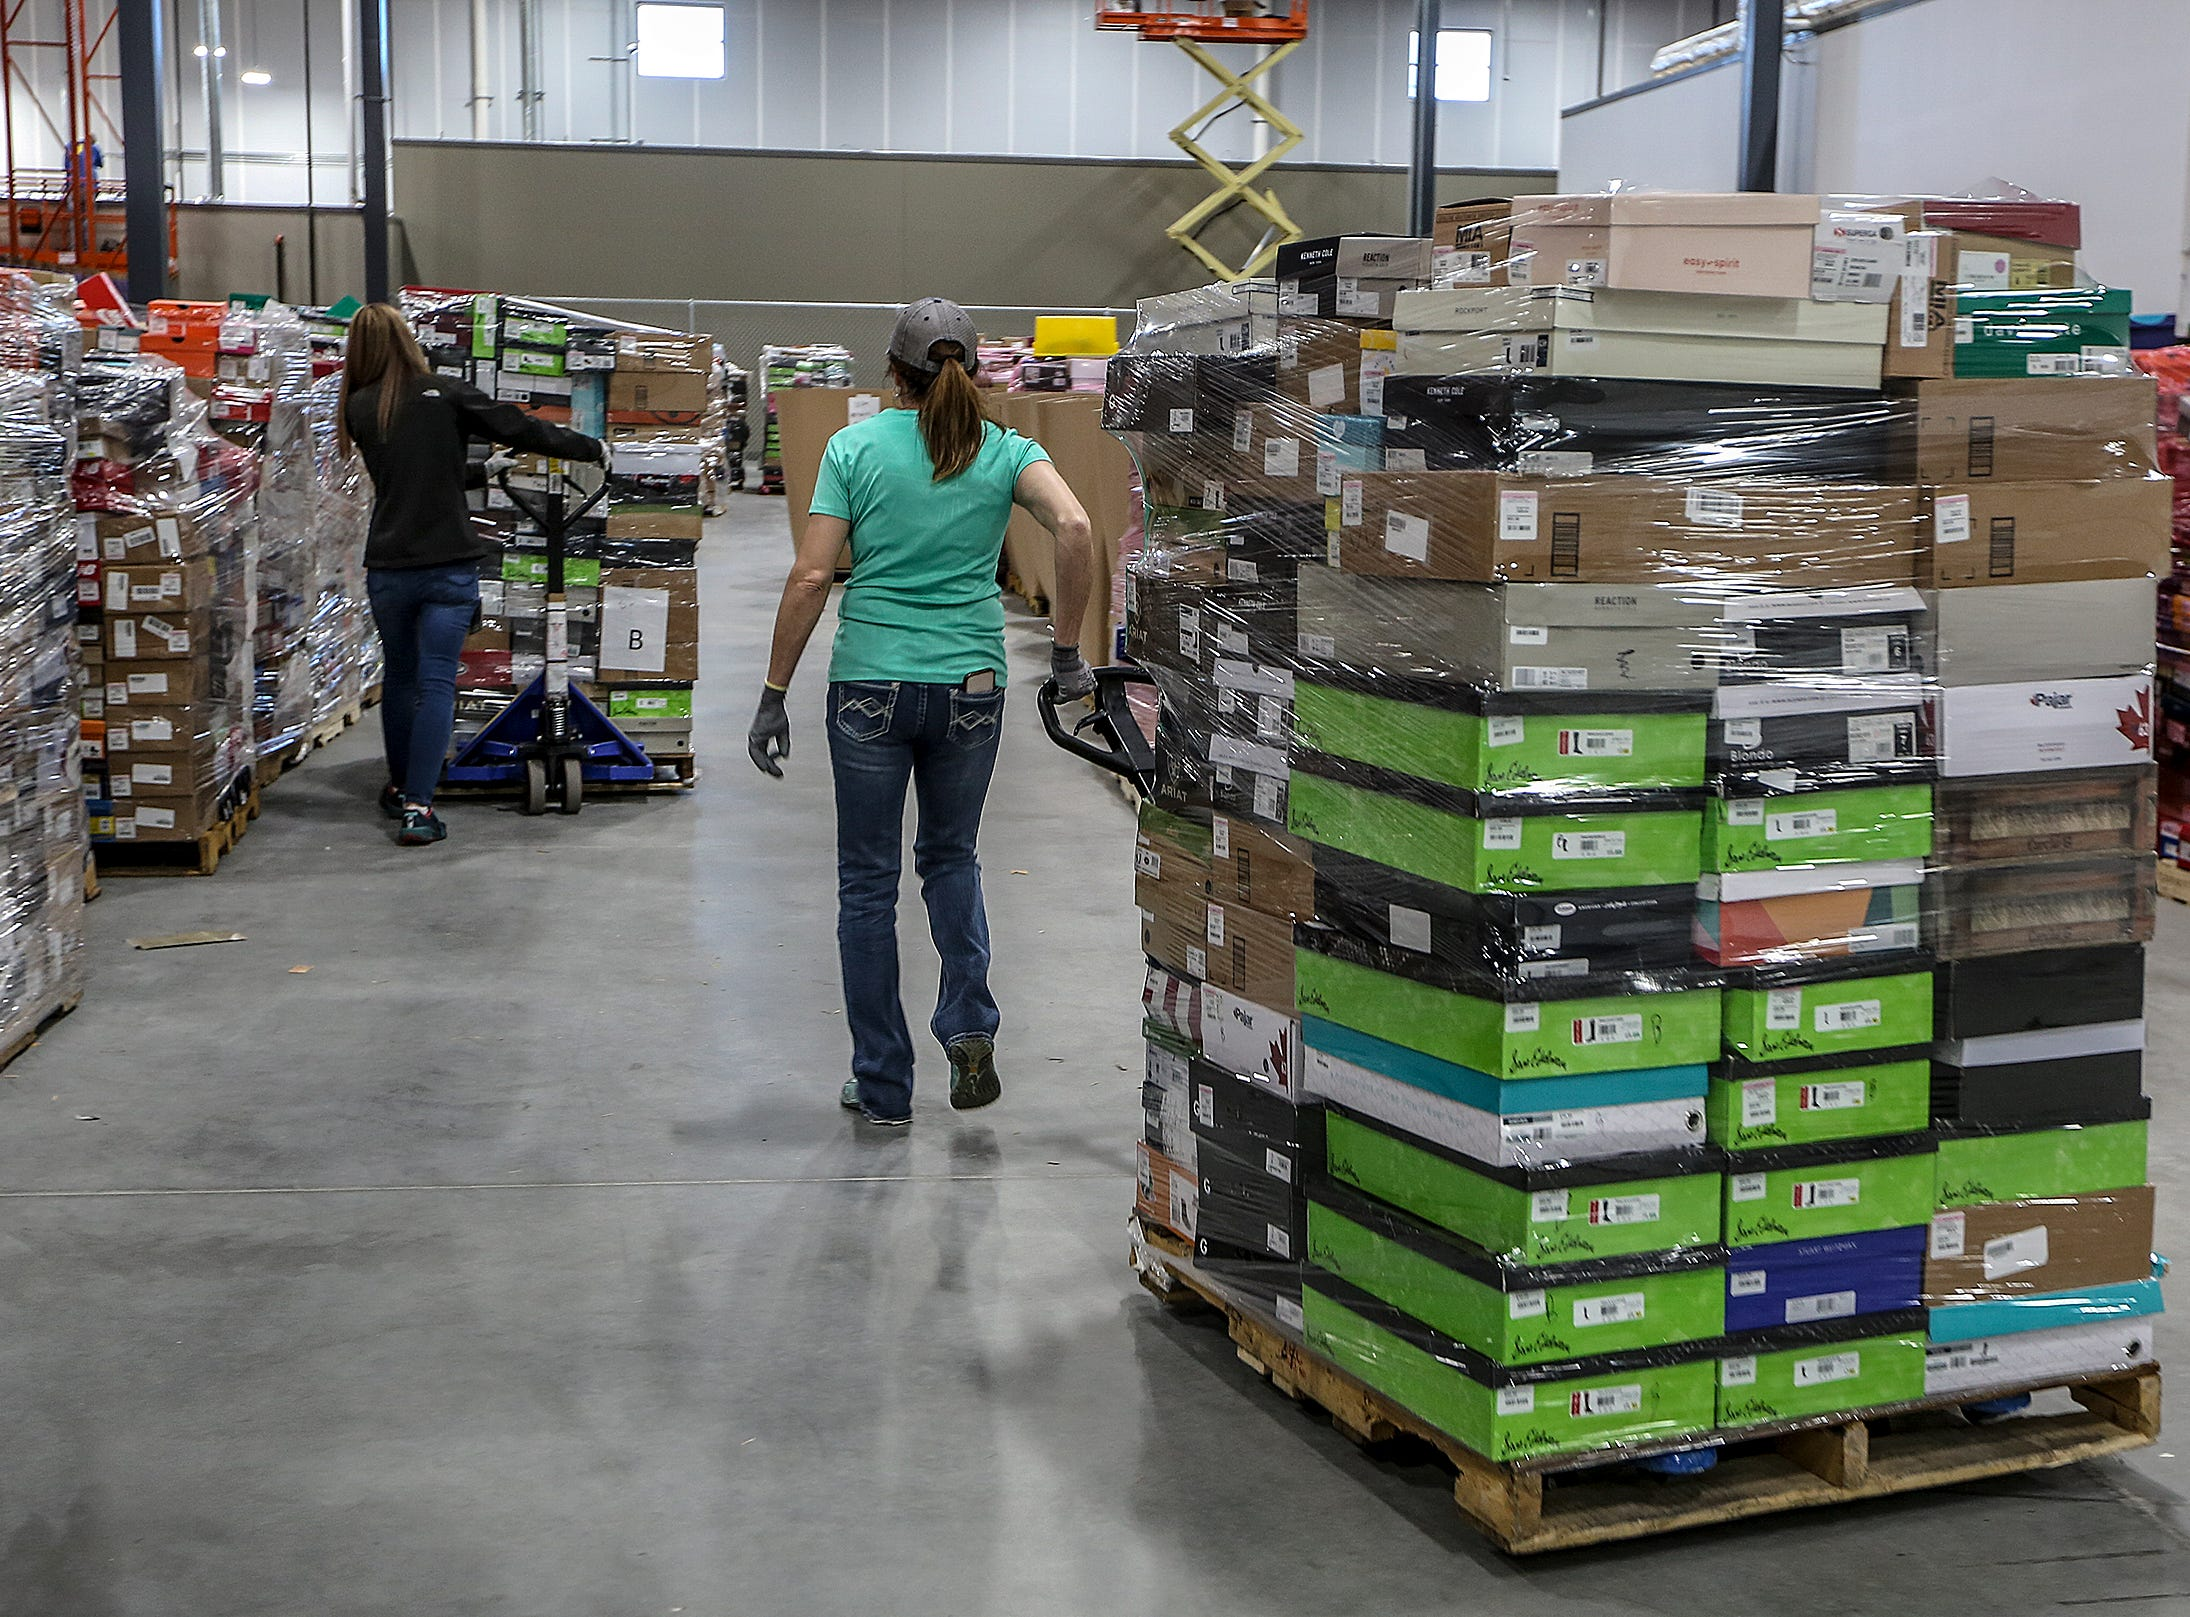 Workers unload tens of thousands of shoes are arriving at the new Zappos facility on Minors Lane.